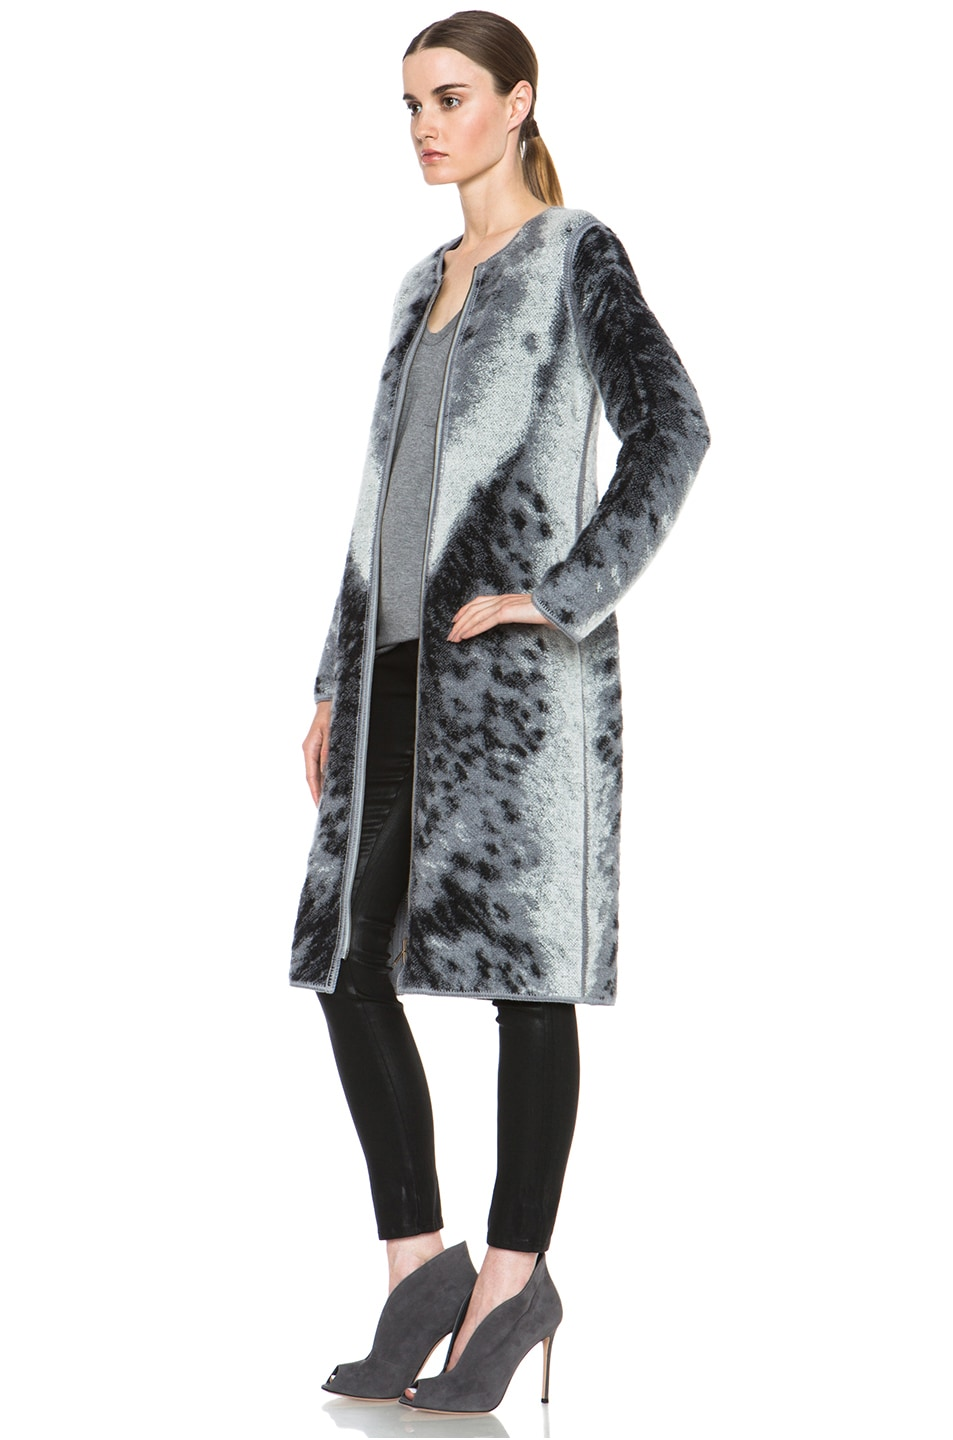 Image 3 of Missoni Mohair-Blend Cardigan Jacket in Grey Leopard & Zebra Print